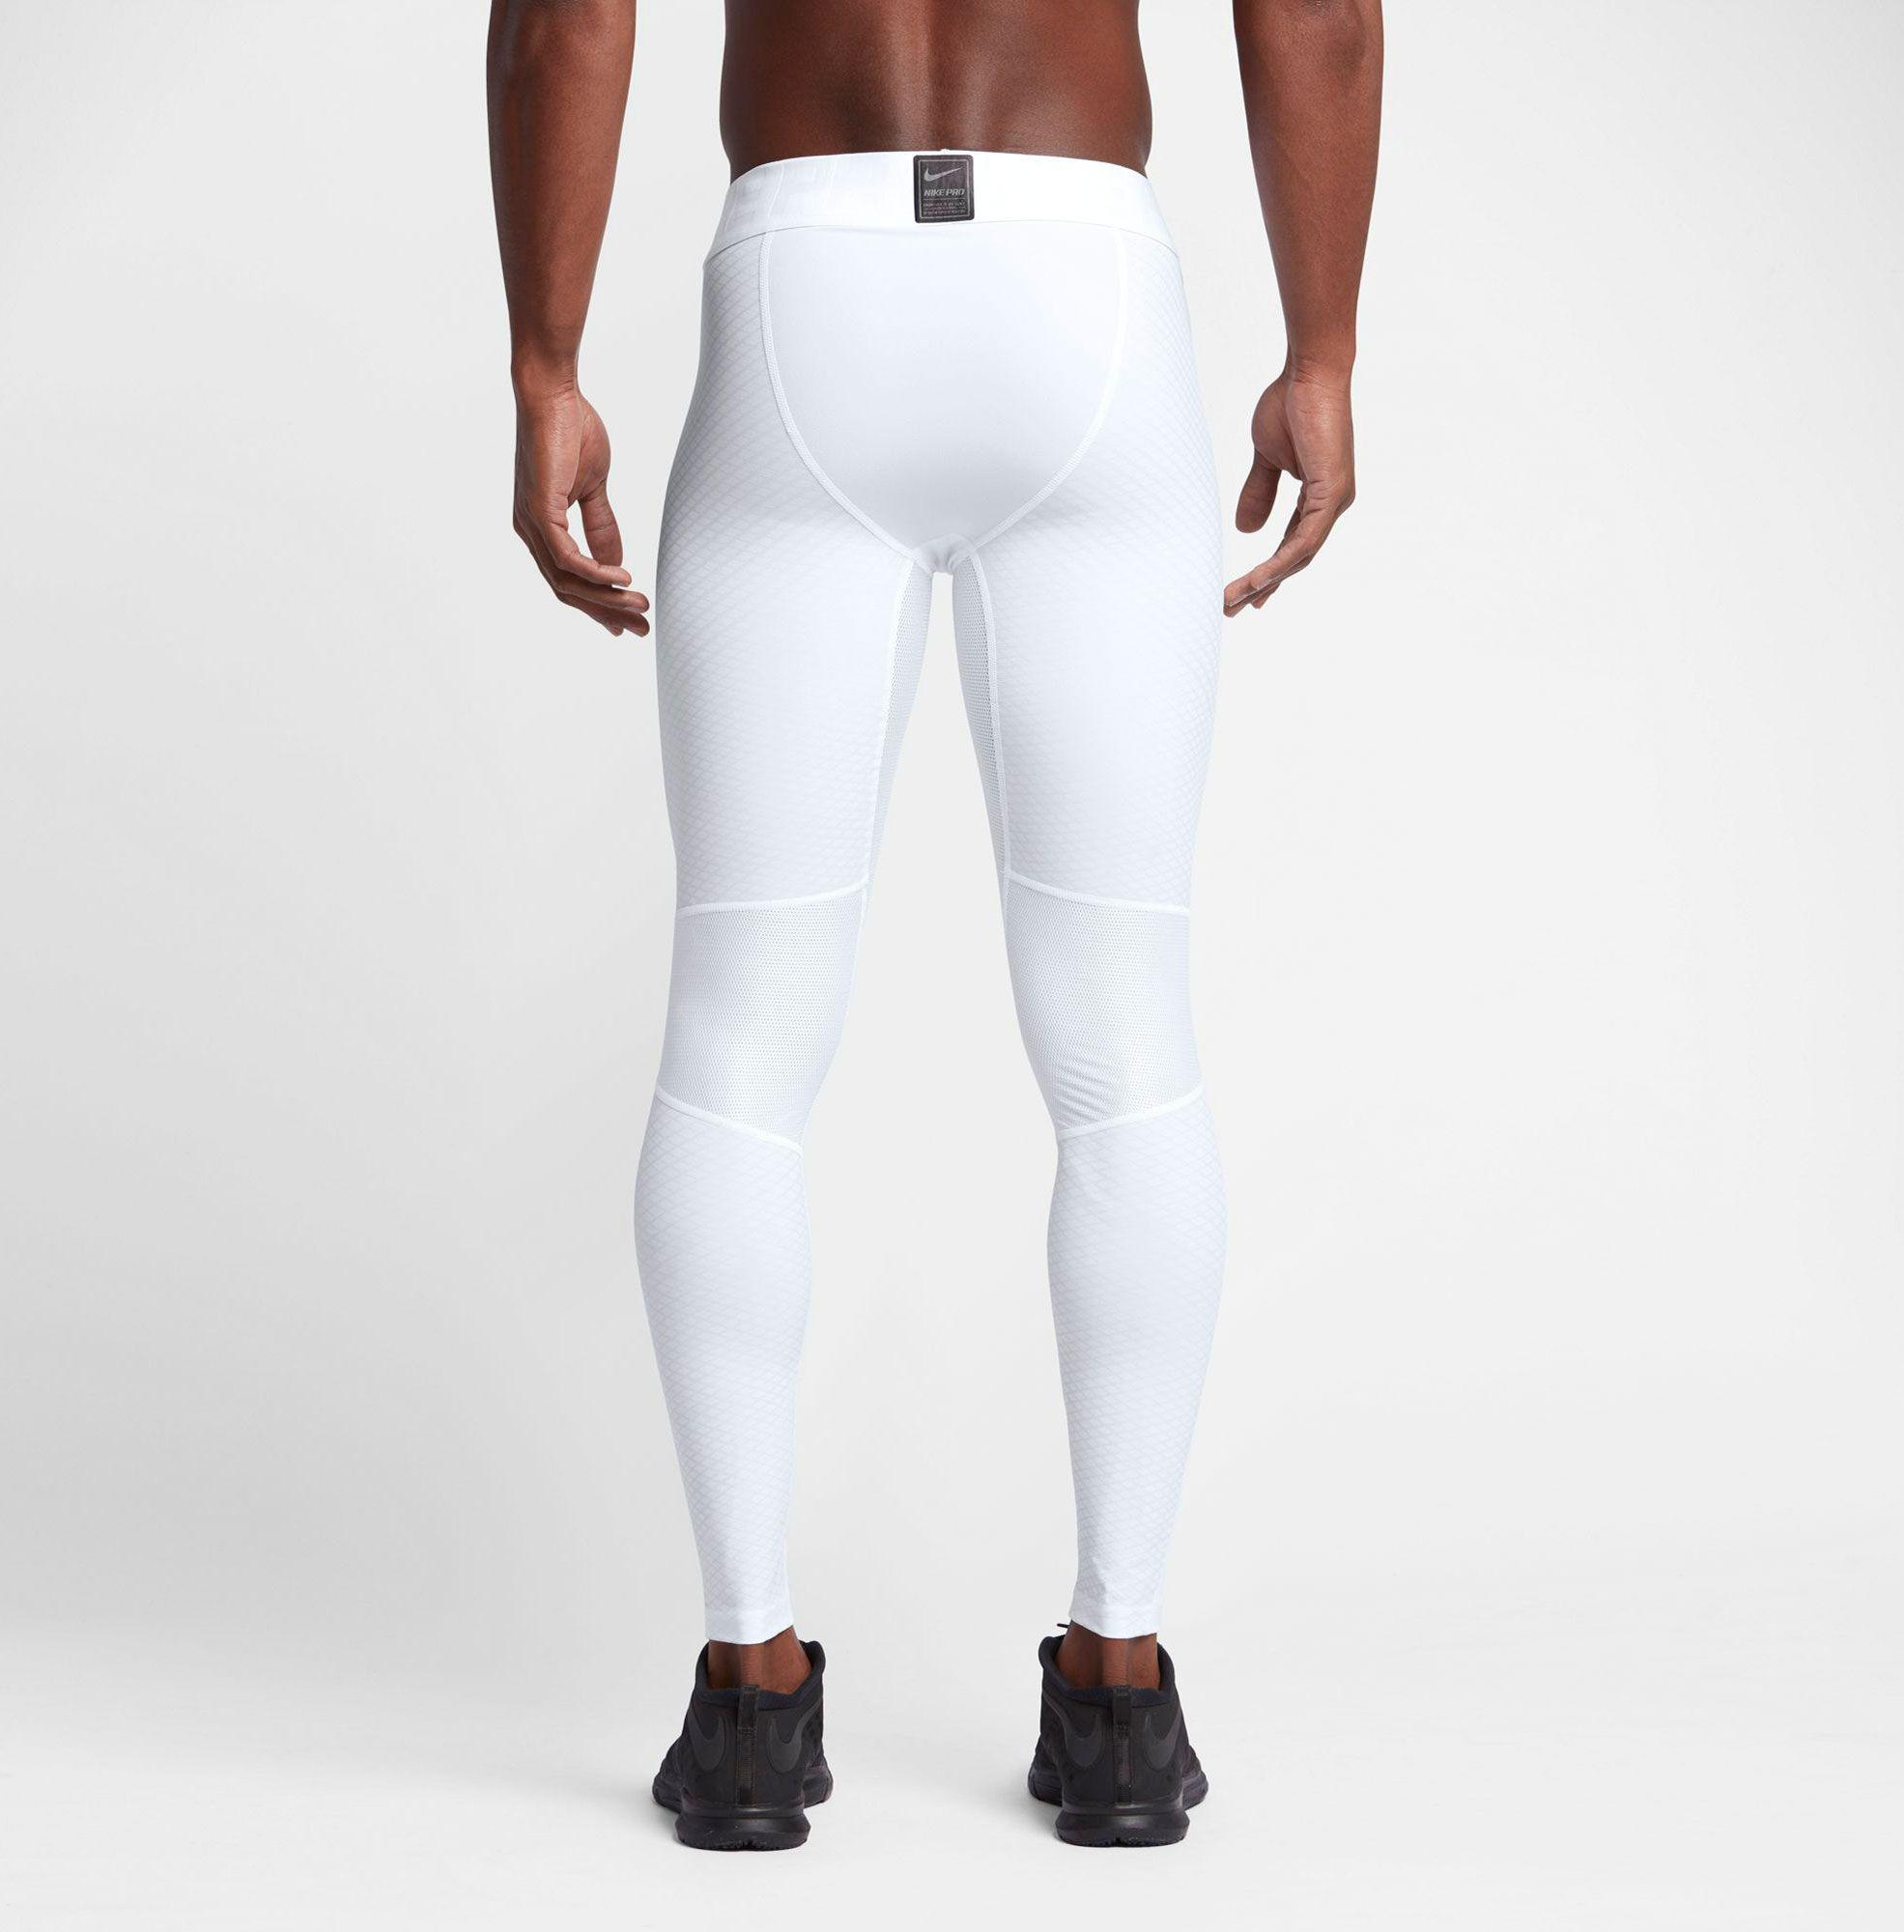 b7609decd5 Nike Pro Zonal Strength Hyper Compression Tights in White for Men - Lyst